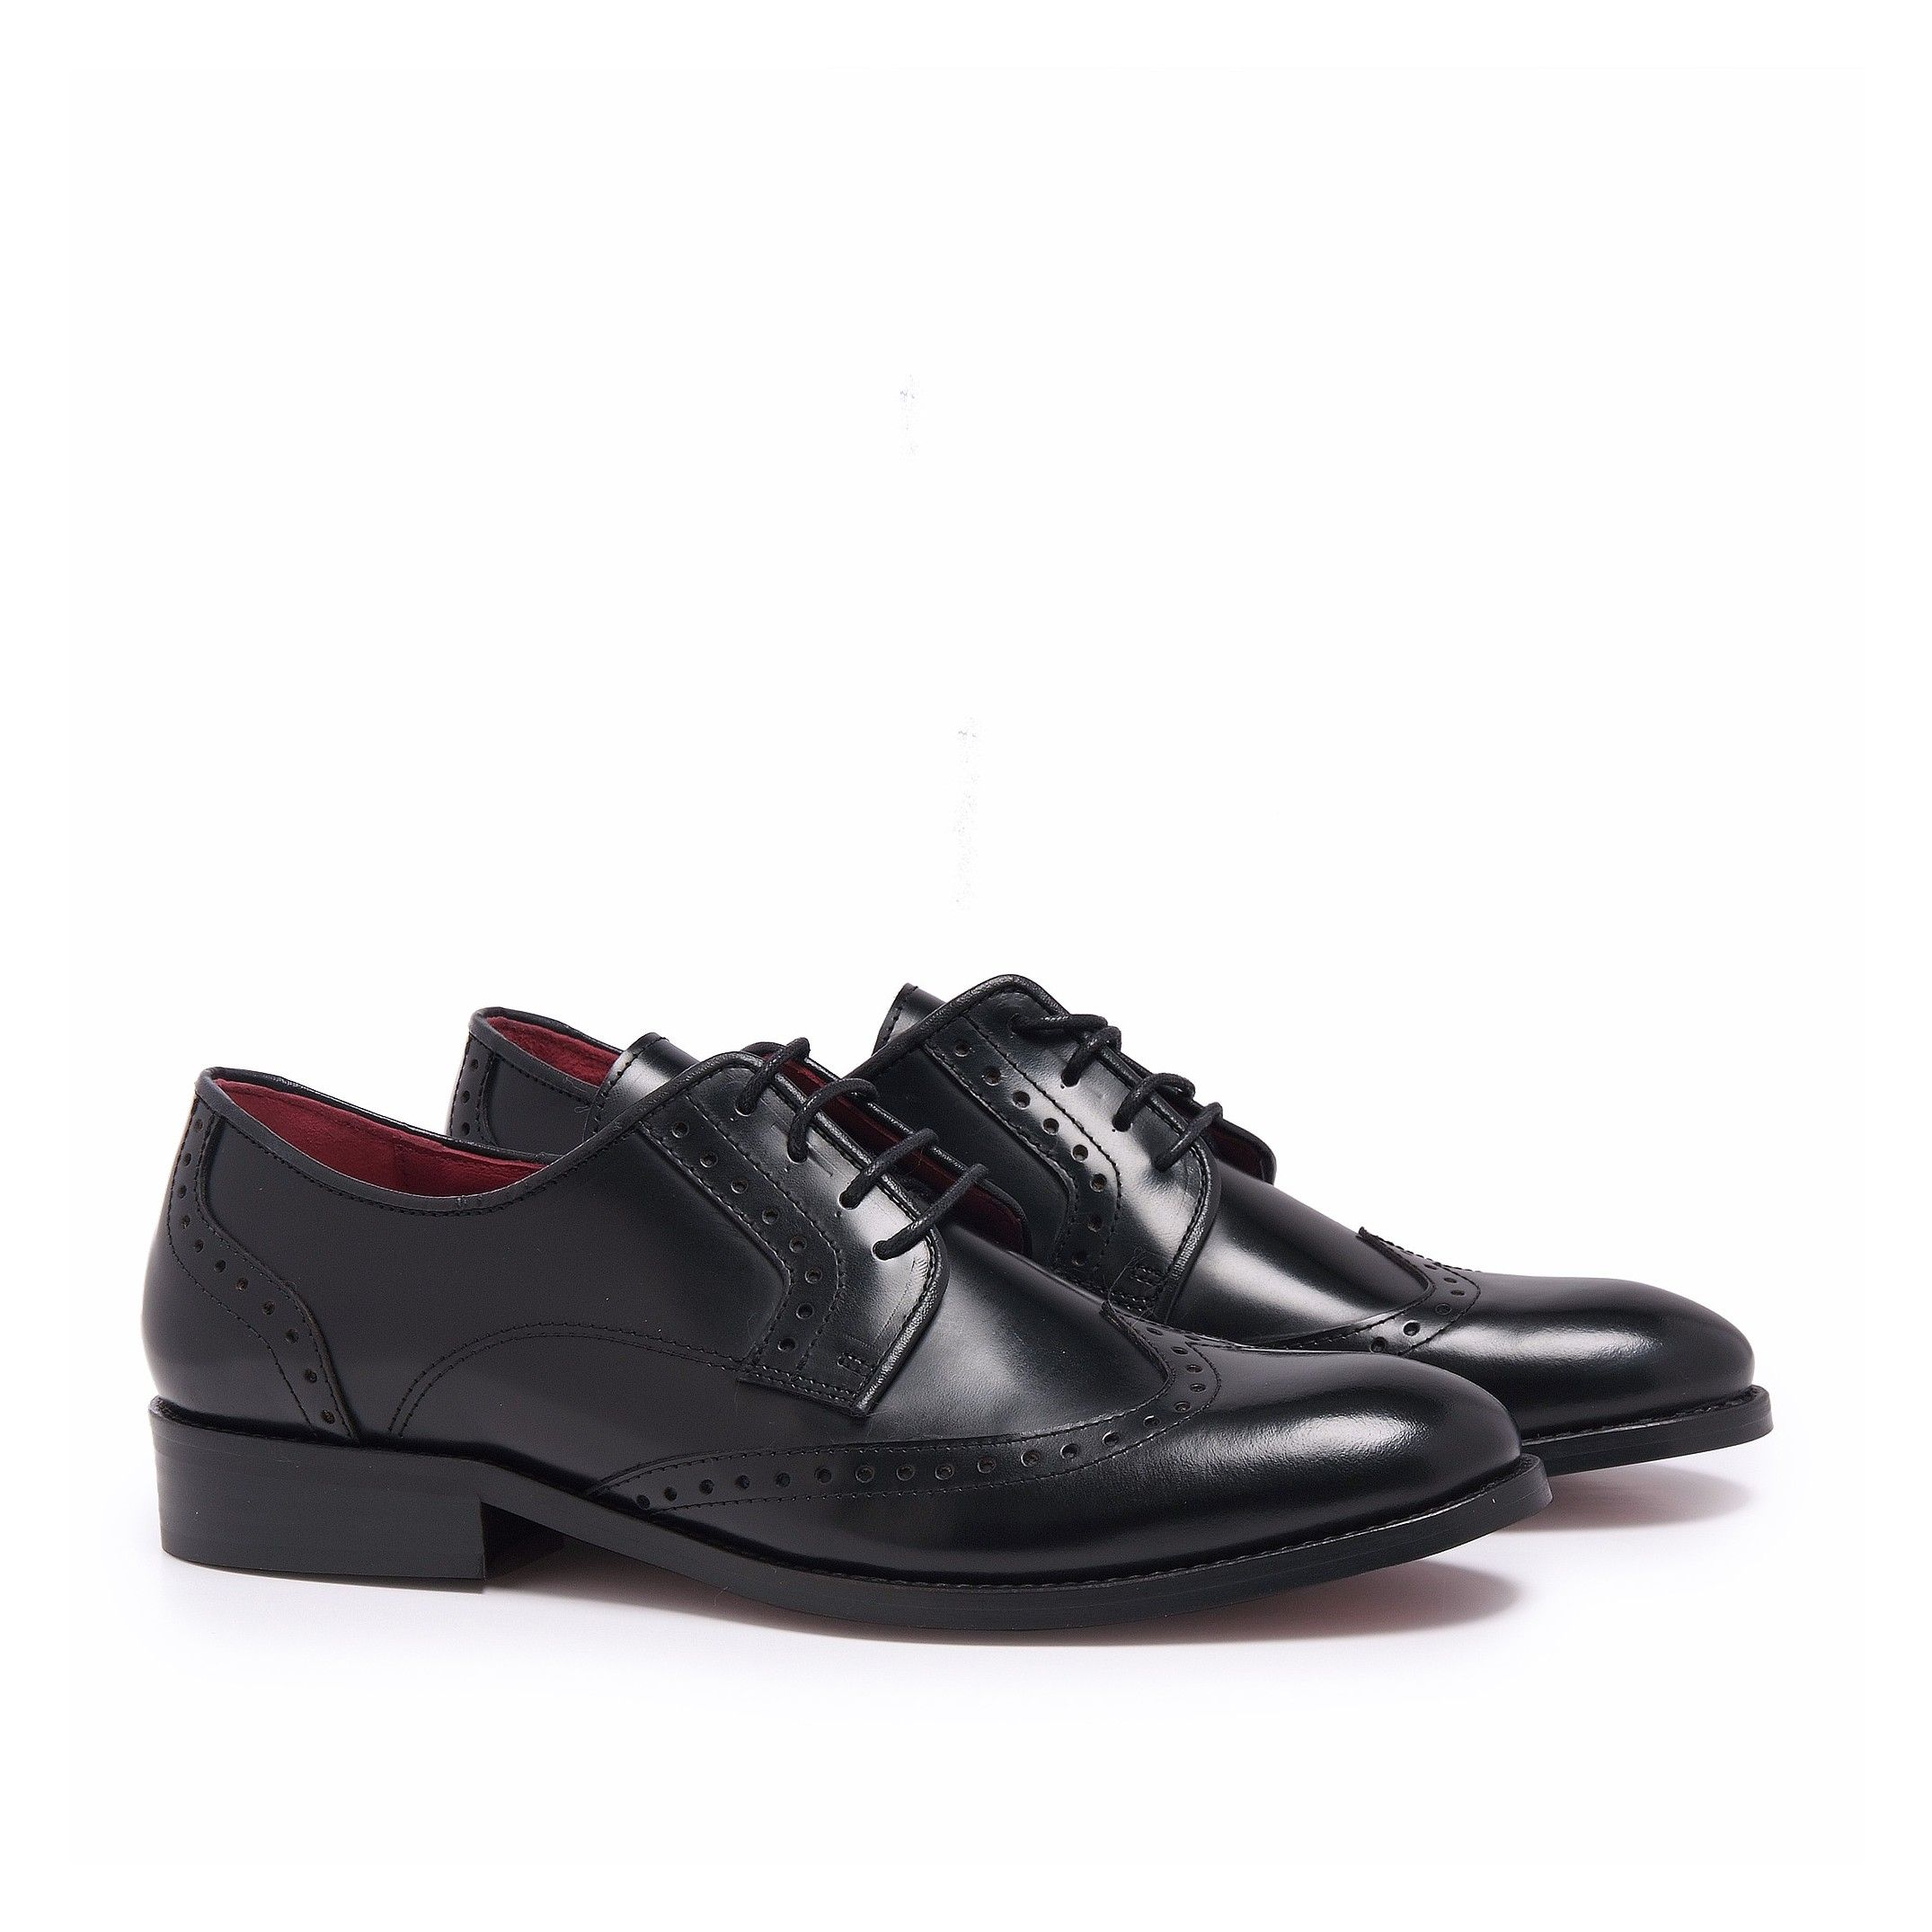 Leather Blucher Shoes for Men Castellanisimos